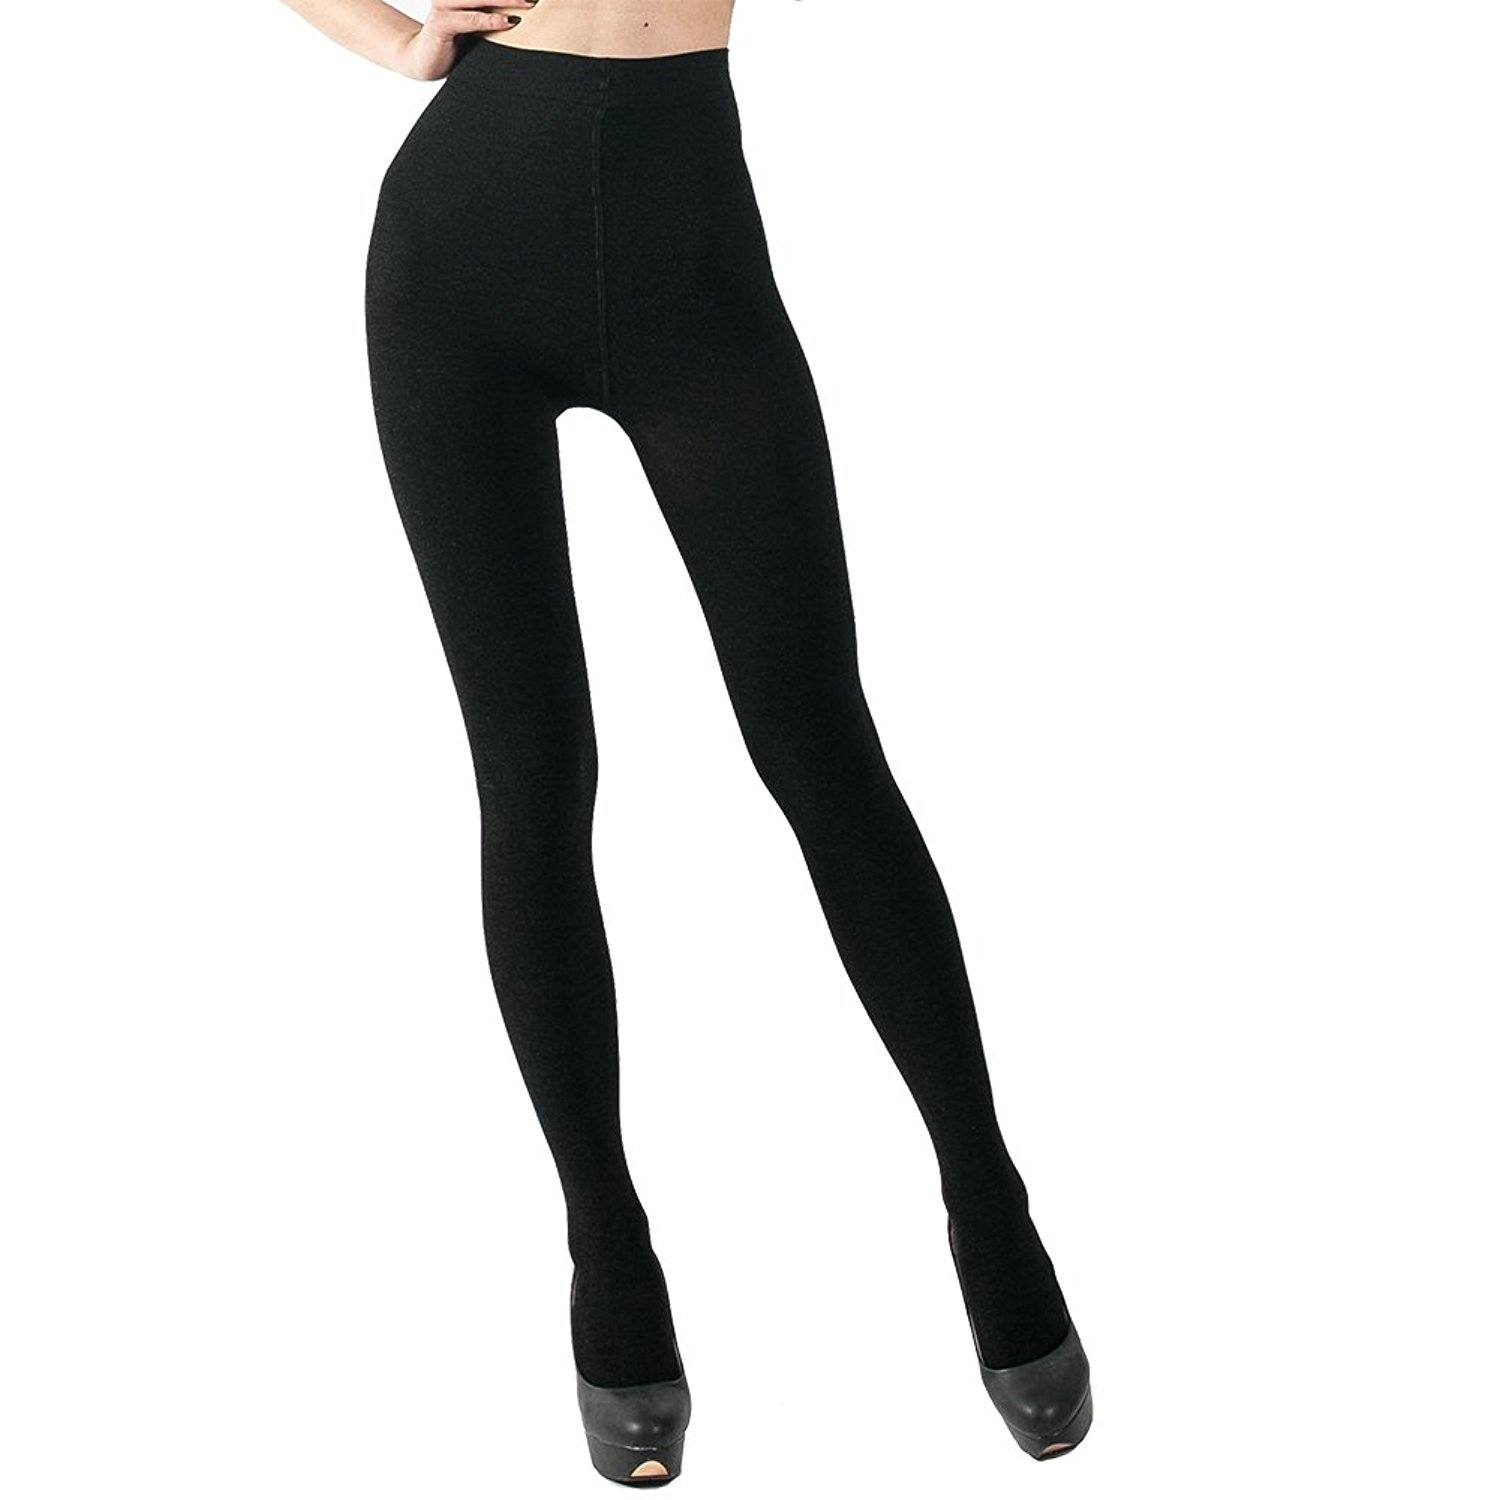 f9eb55f2ecacb2 Get Quotations · INCHER Fleece Leggings, Stirrup Leggings,Warm Fleece Lined  Tights Thermal Winter Pantyhose Tights